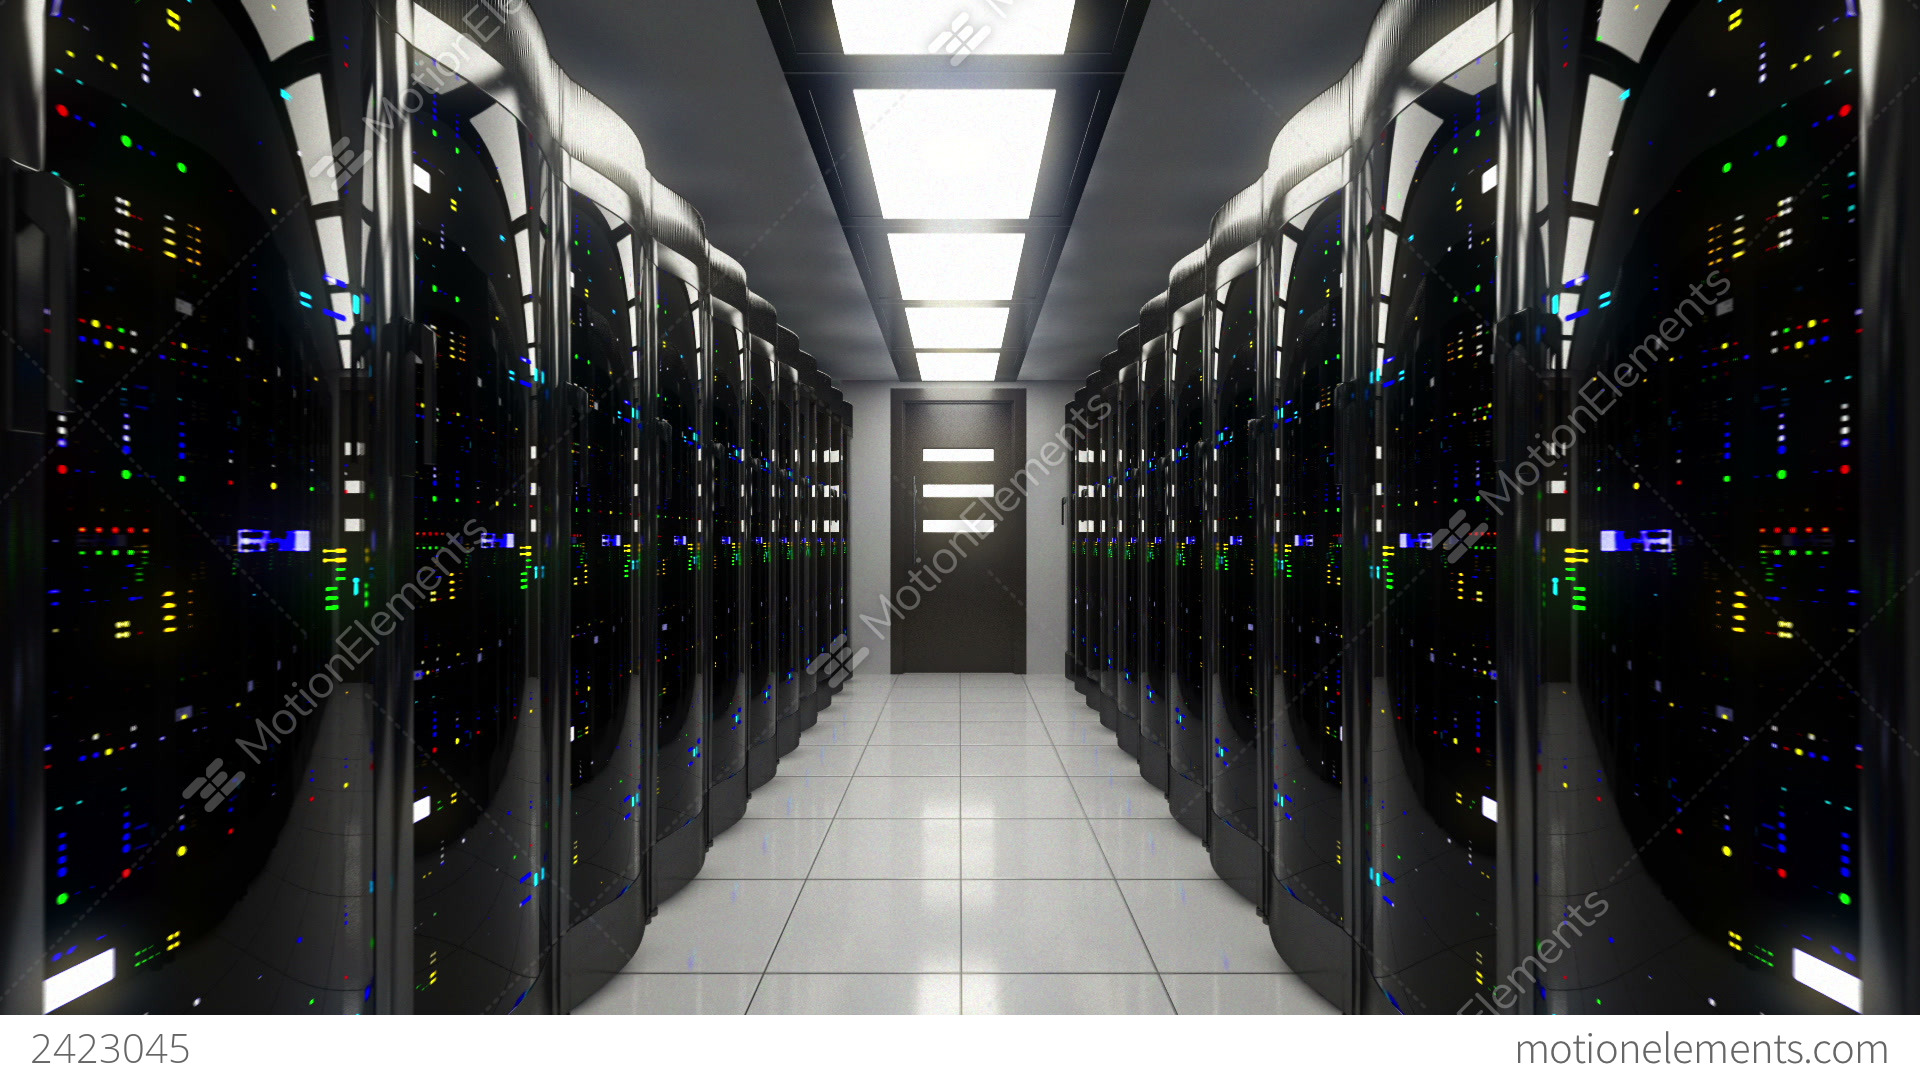 3d Cisco 2016 Hd Wallpaper Blackout In Server Room Stock Animation 2423045